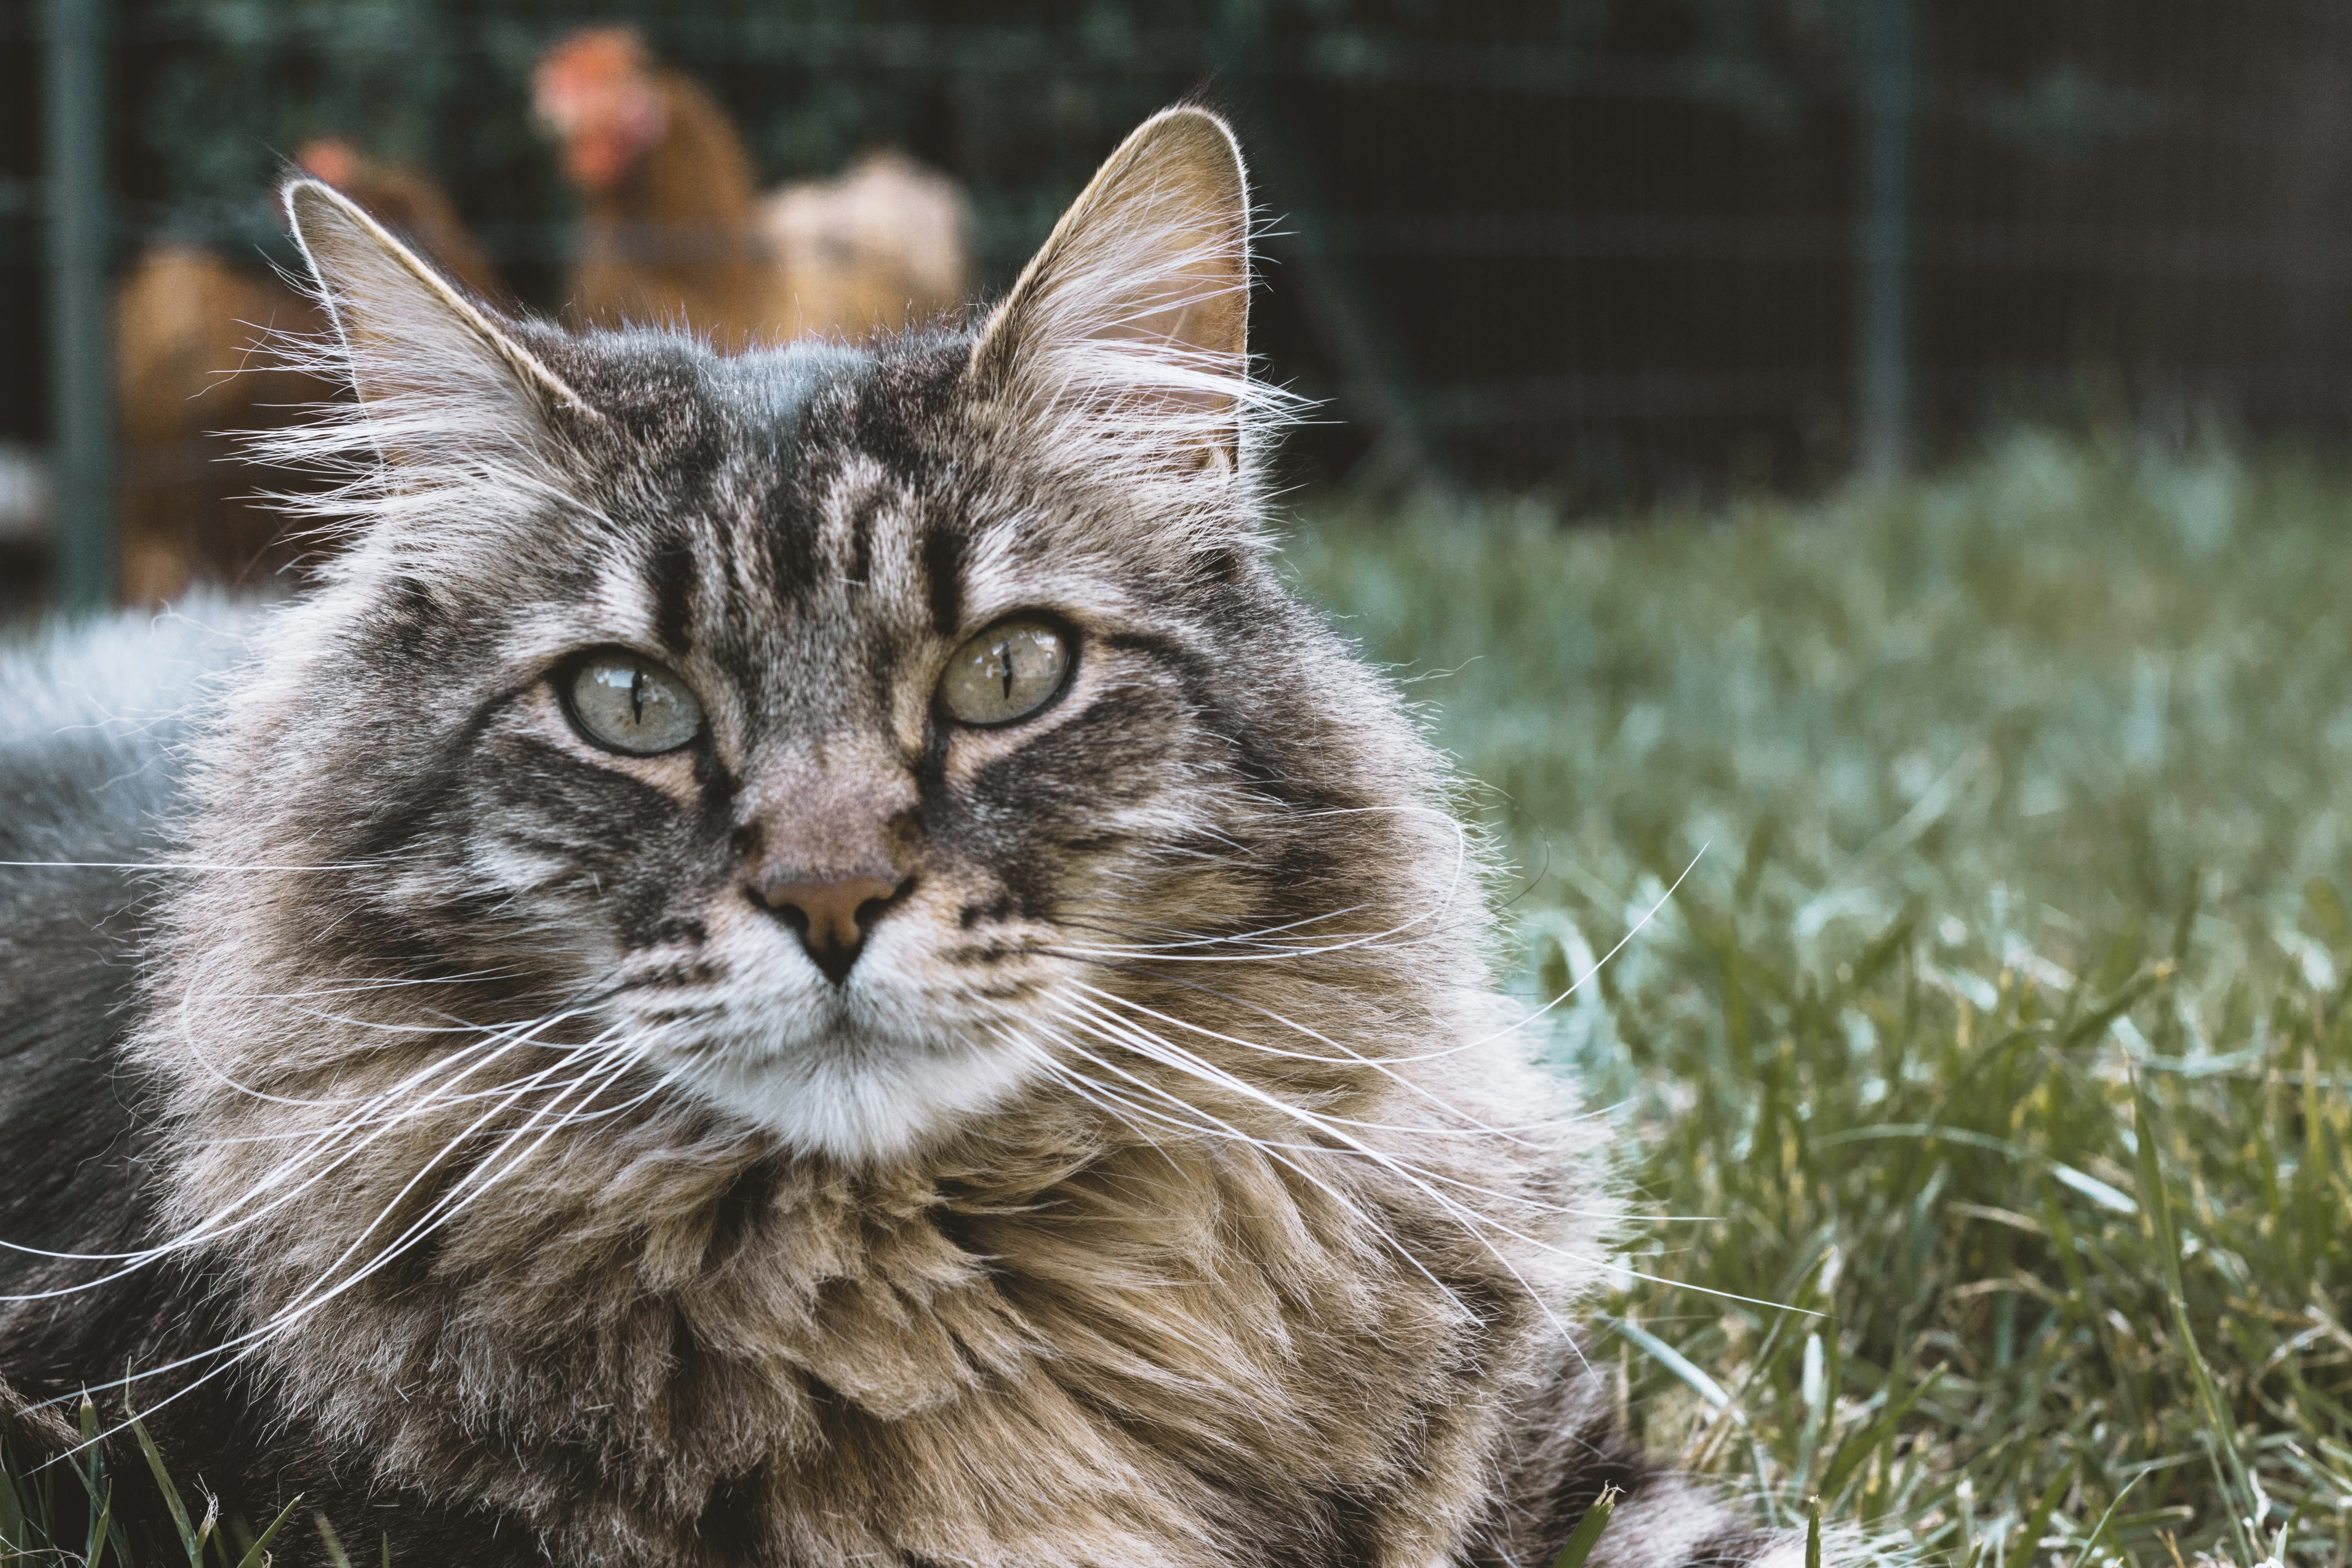 Close-up of a long-haired cat on sitting in green grass